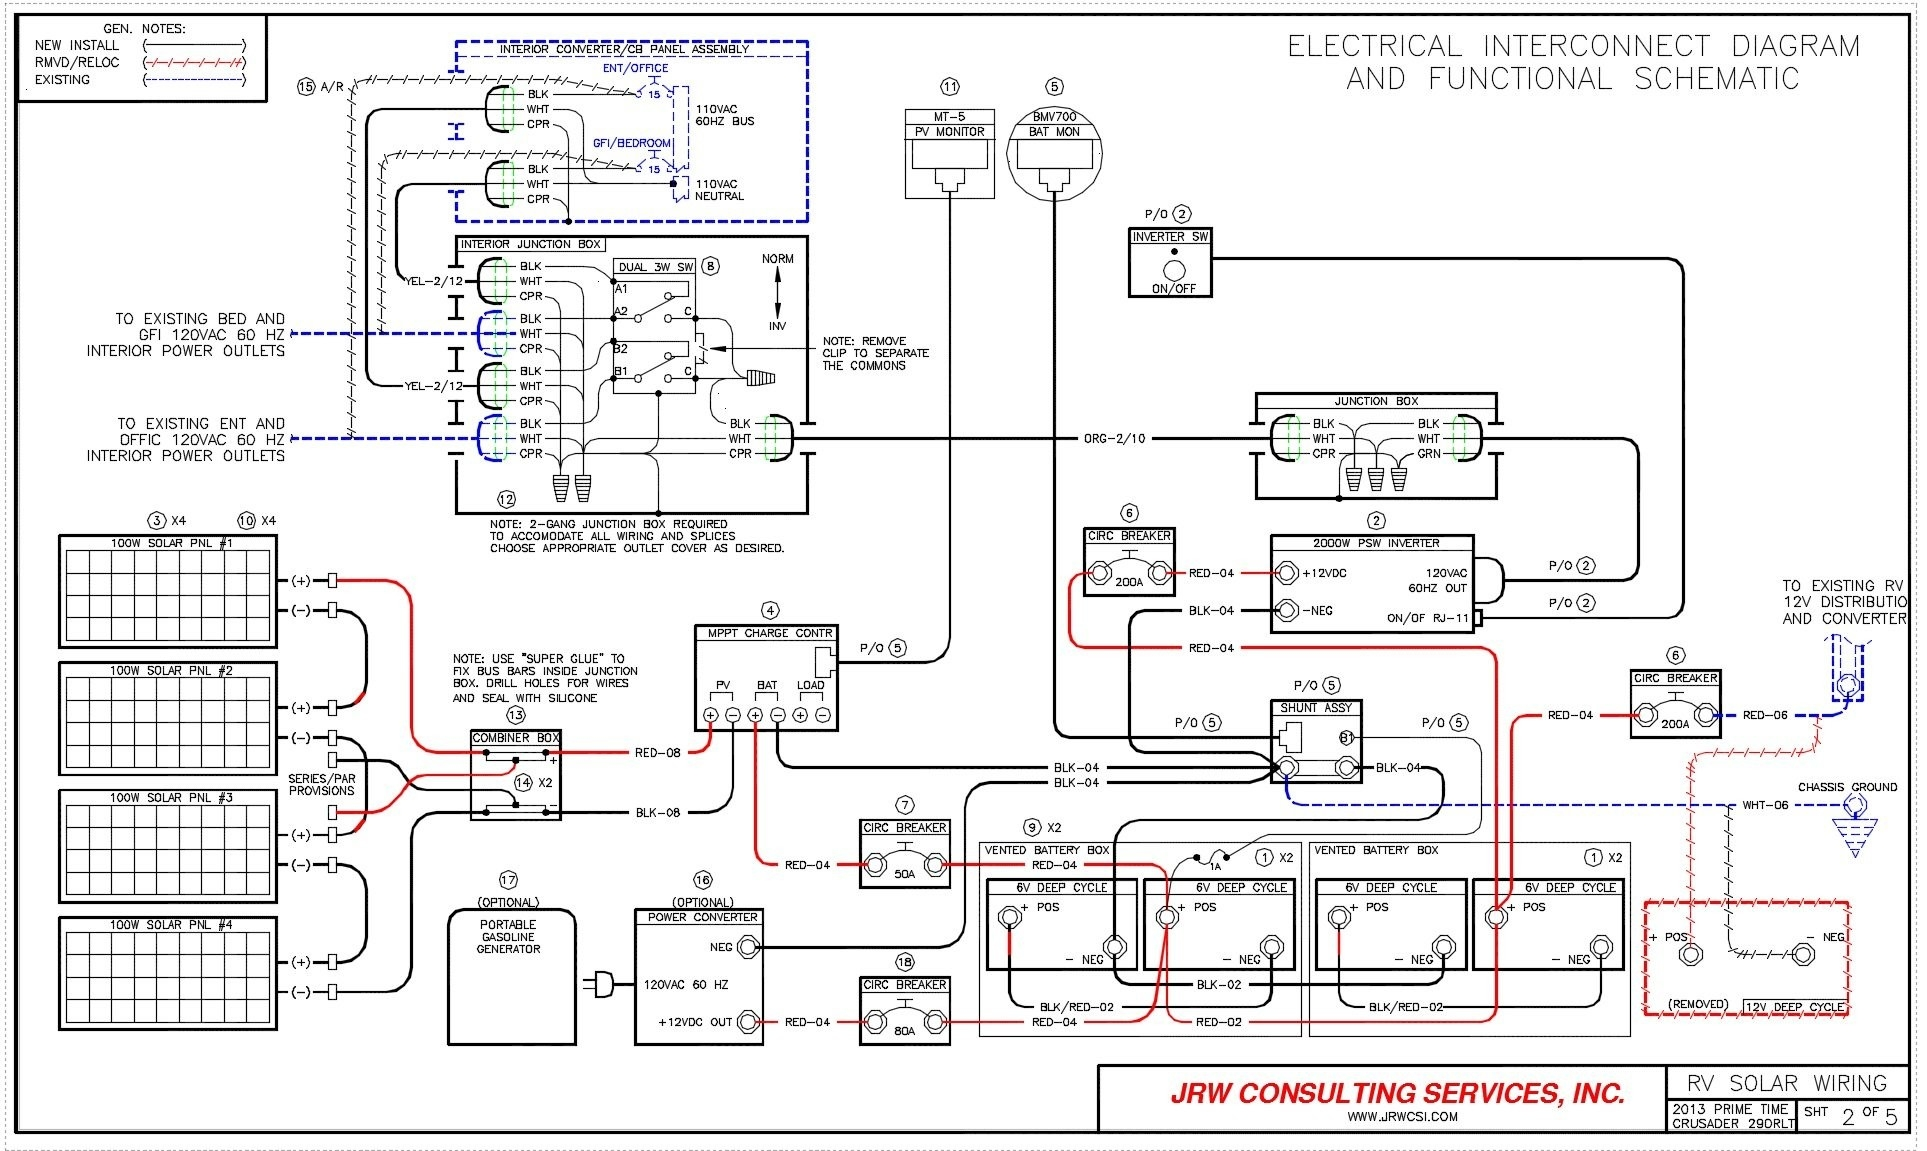 wiring diagram jaguar e holiday rambler wiring schematic | free wiring diagram wiring diagram roadtrek e trek #8